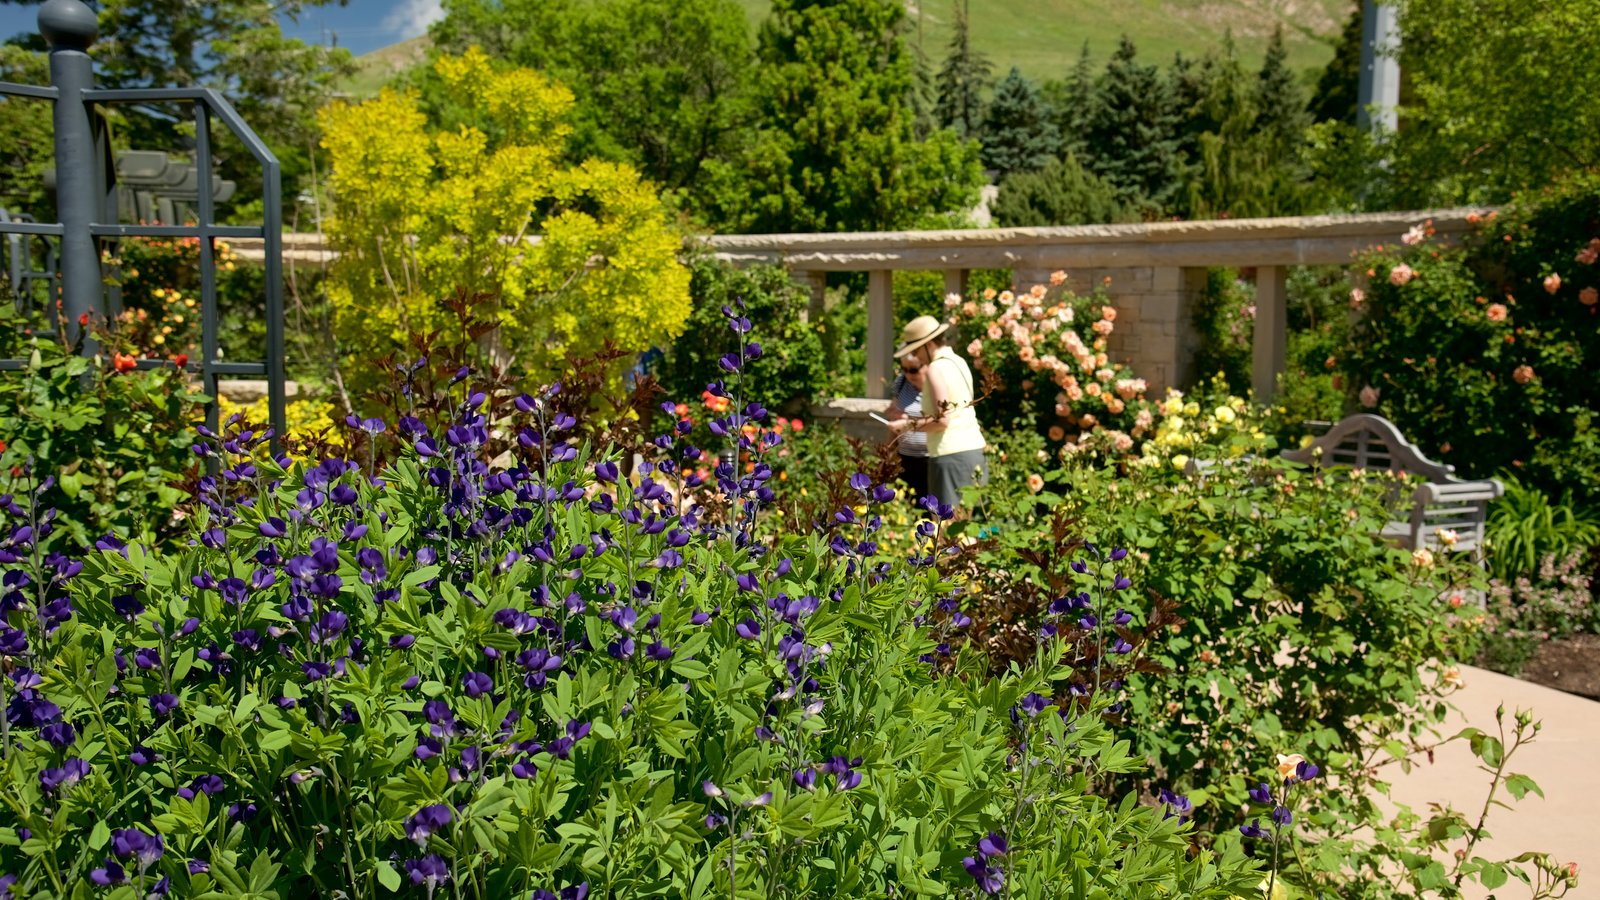 Red Butte Garden and Arboreteum which includes flowers and a park